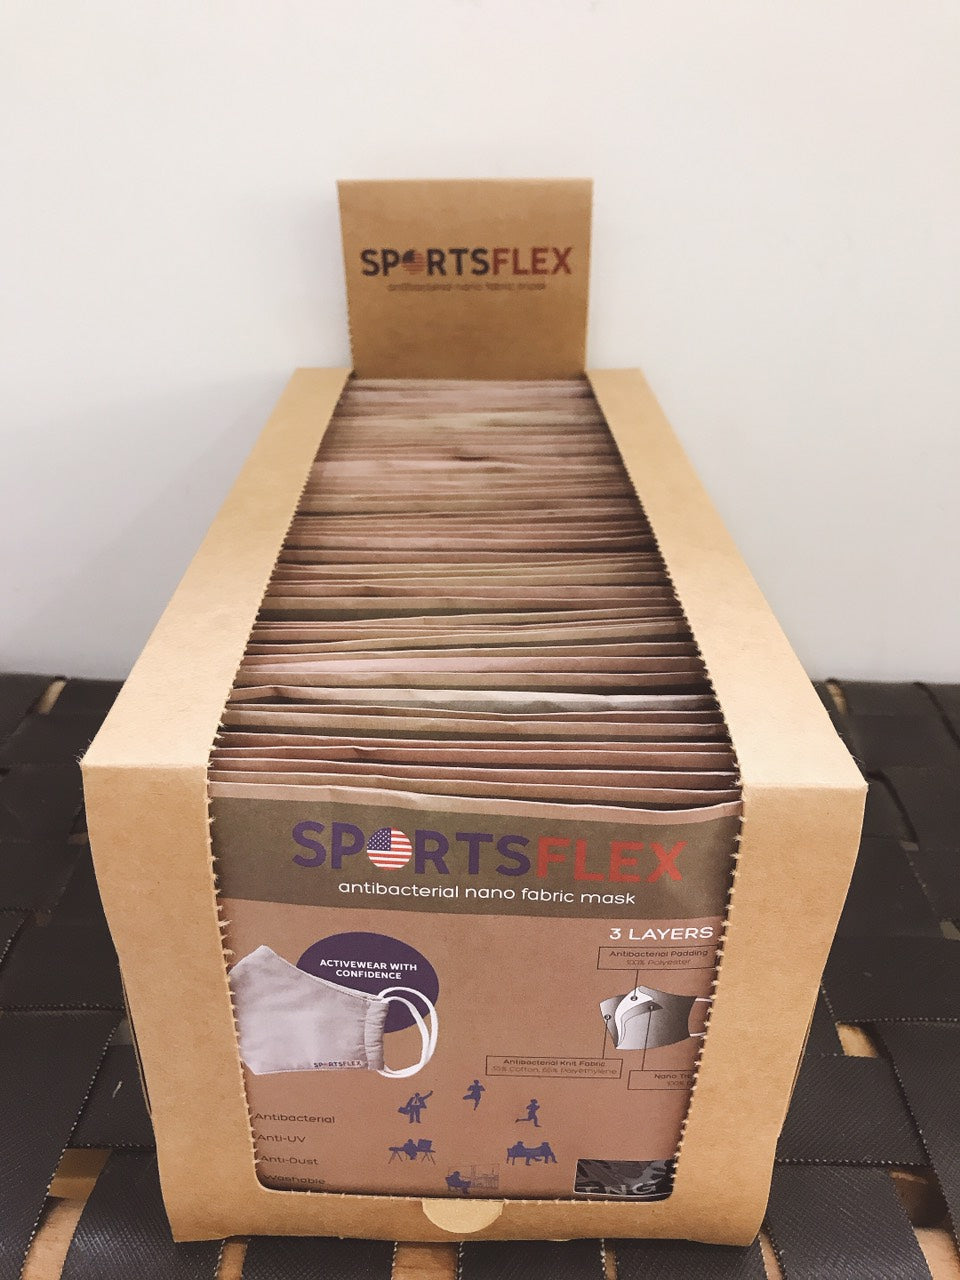 50 pc Box of SportsFlex Masks Wholesale (Minimum order 51+ Boxes)